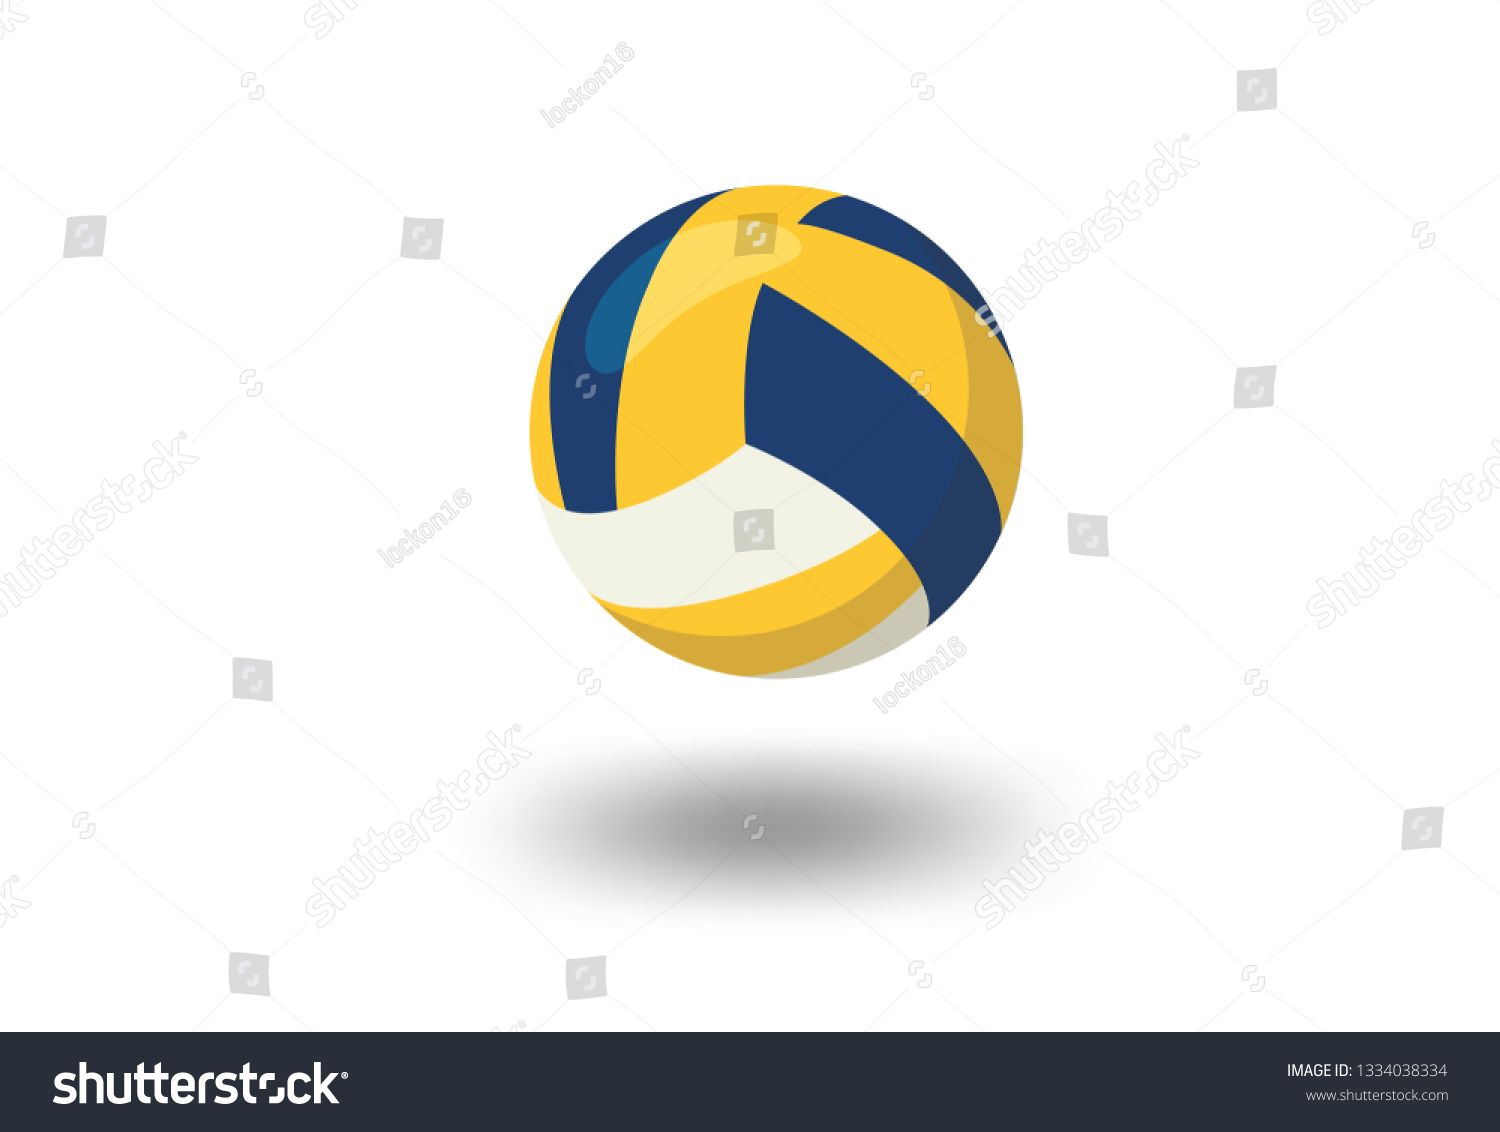 Volleyball Illustration Vector Royalty Free Image Vector In 2020 Illustration Vector Royalty Free